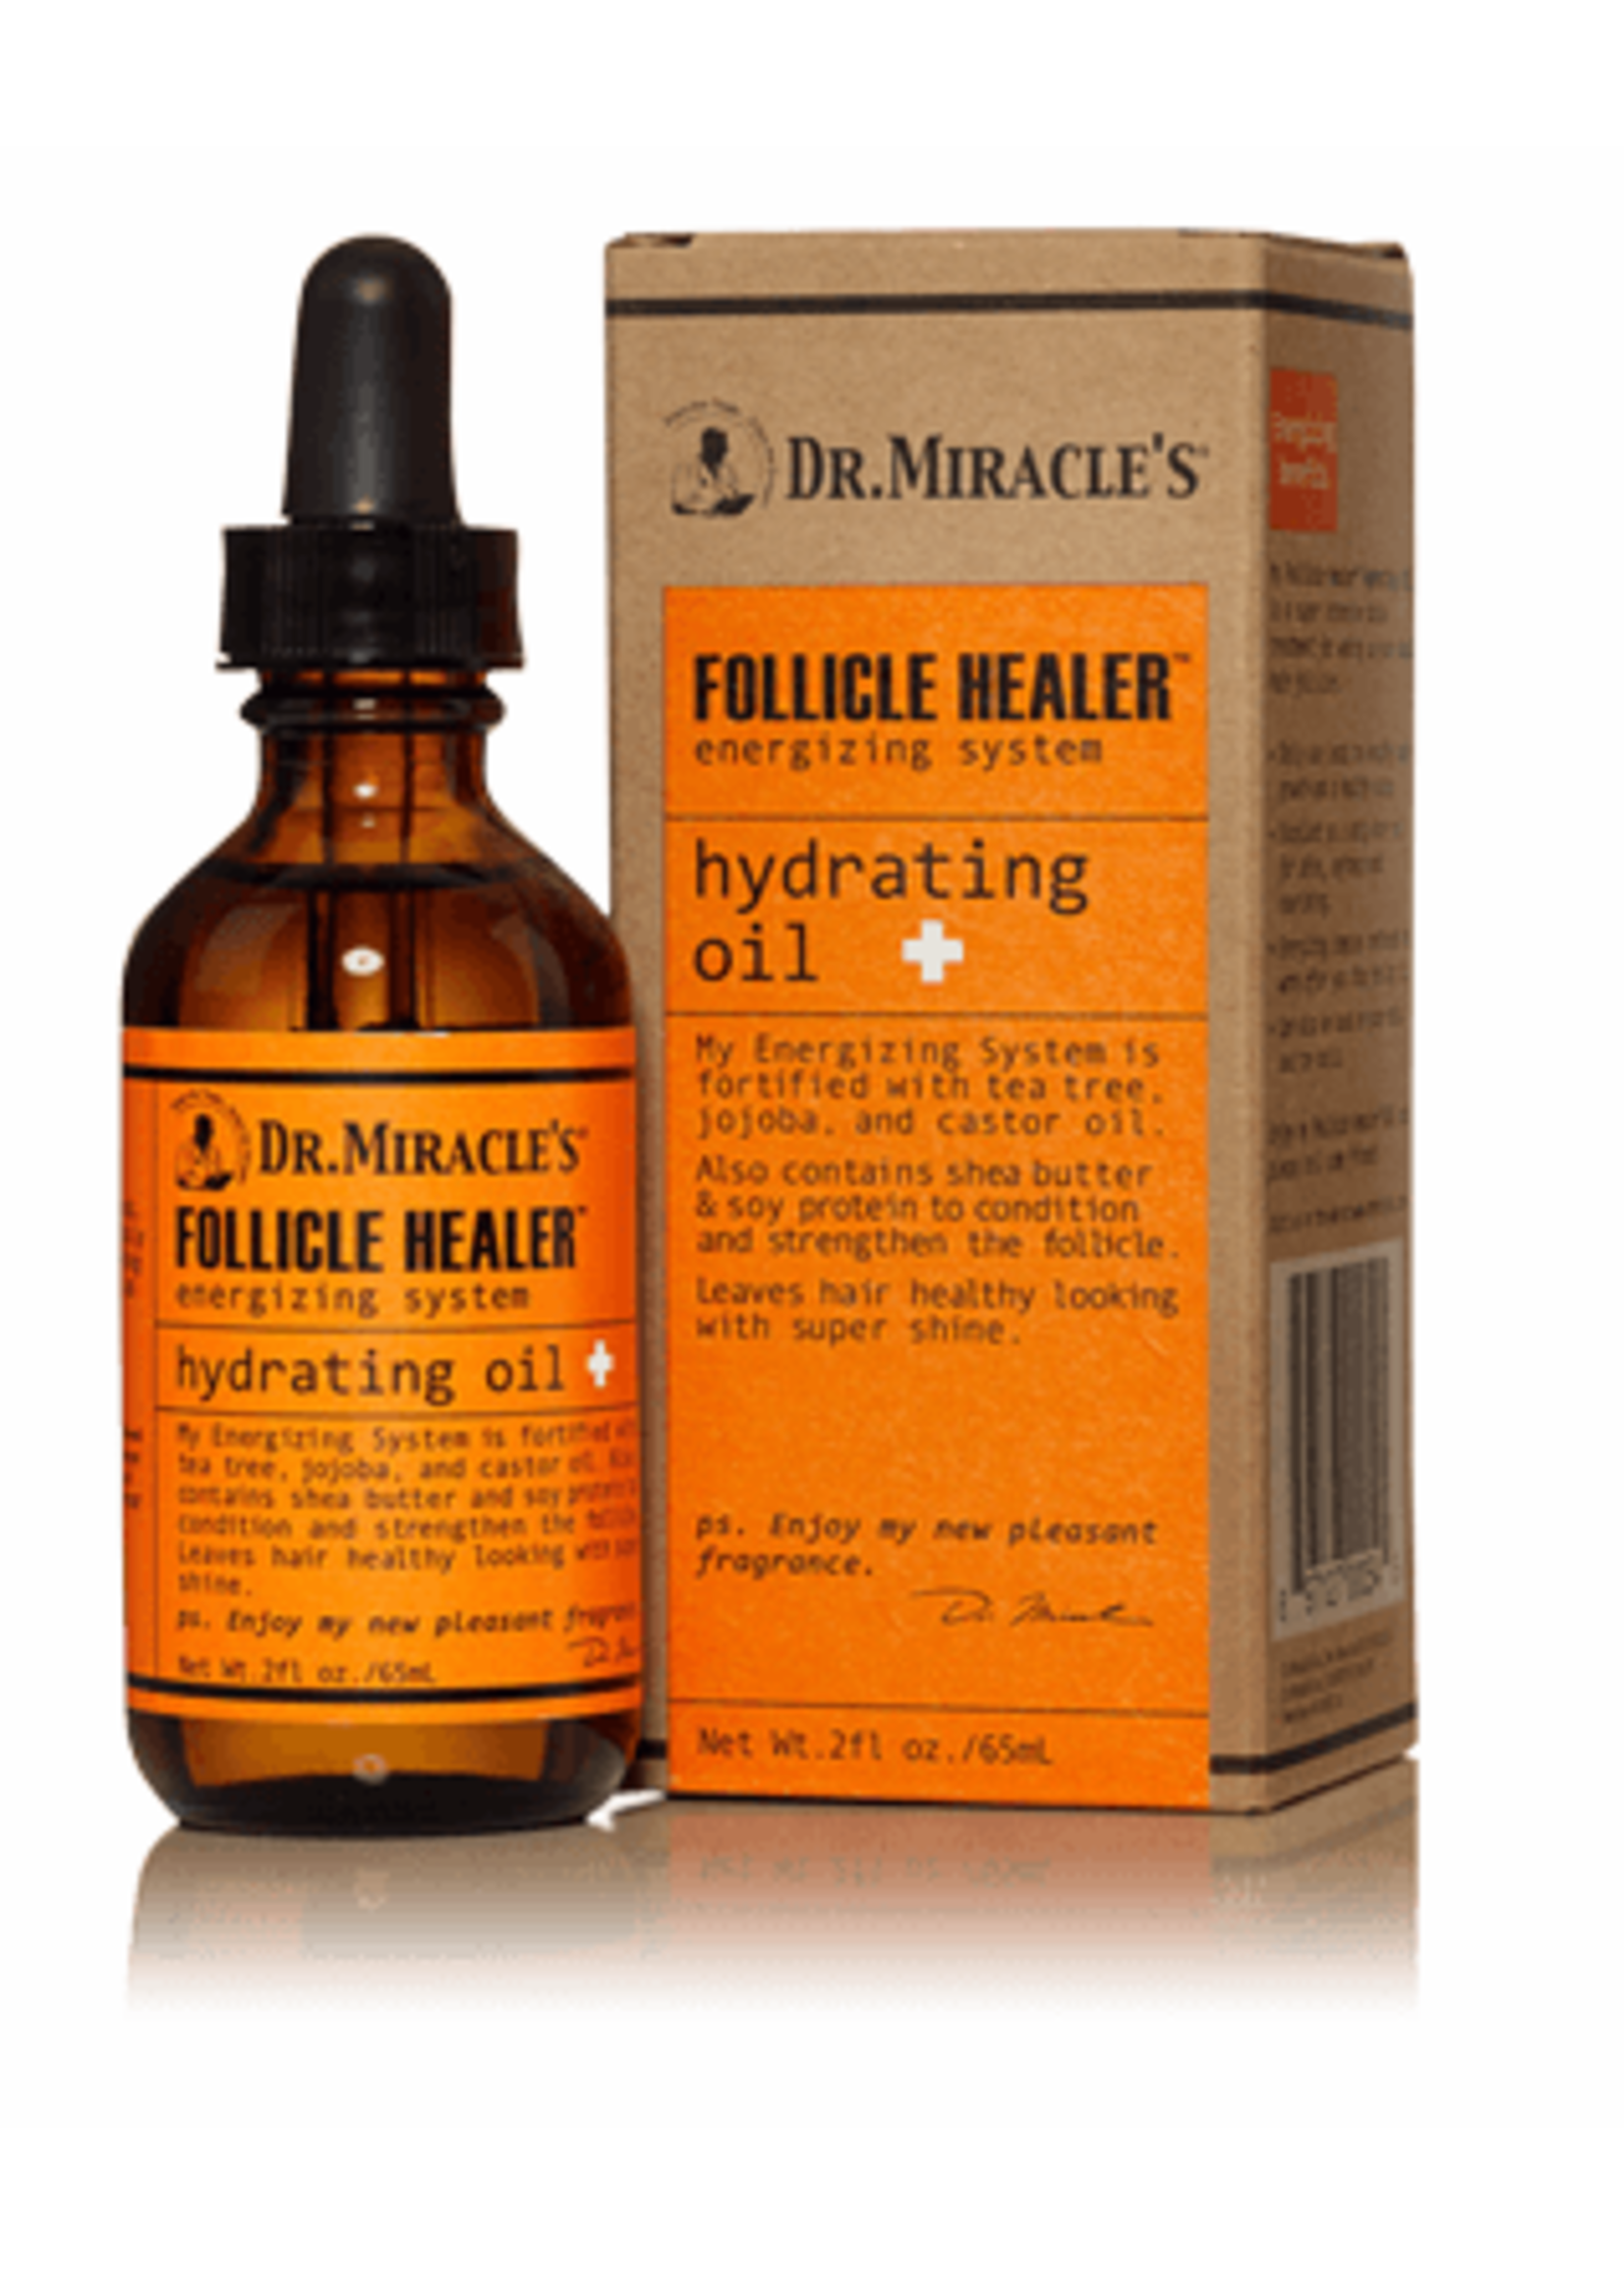 Dr. Miracles Follicle Healer Hydrating Oil